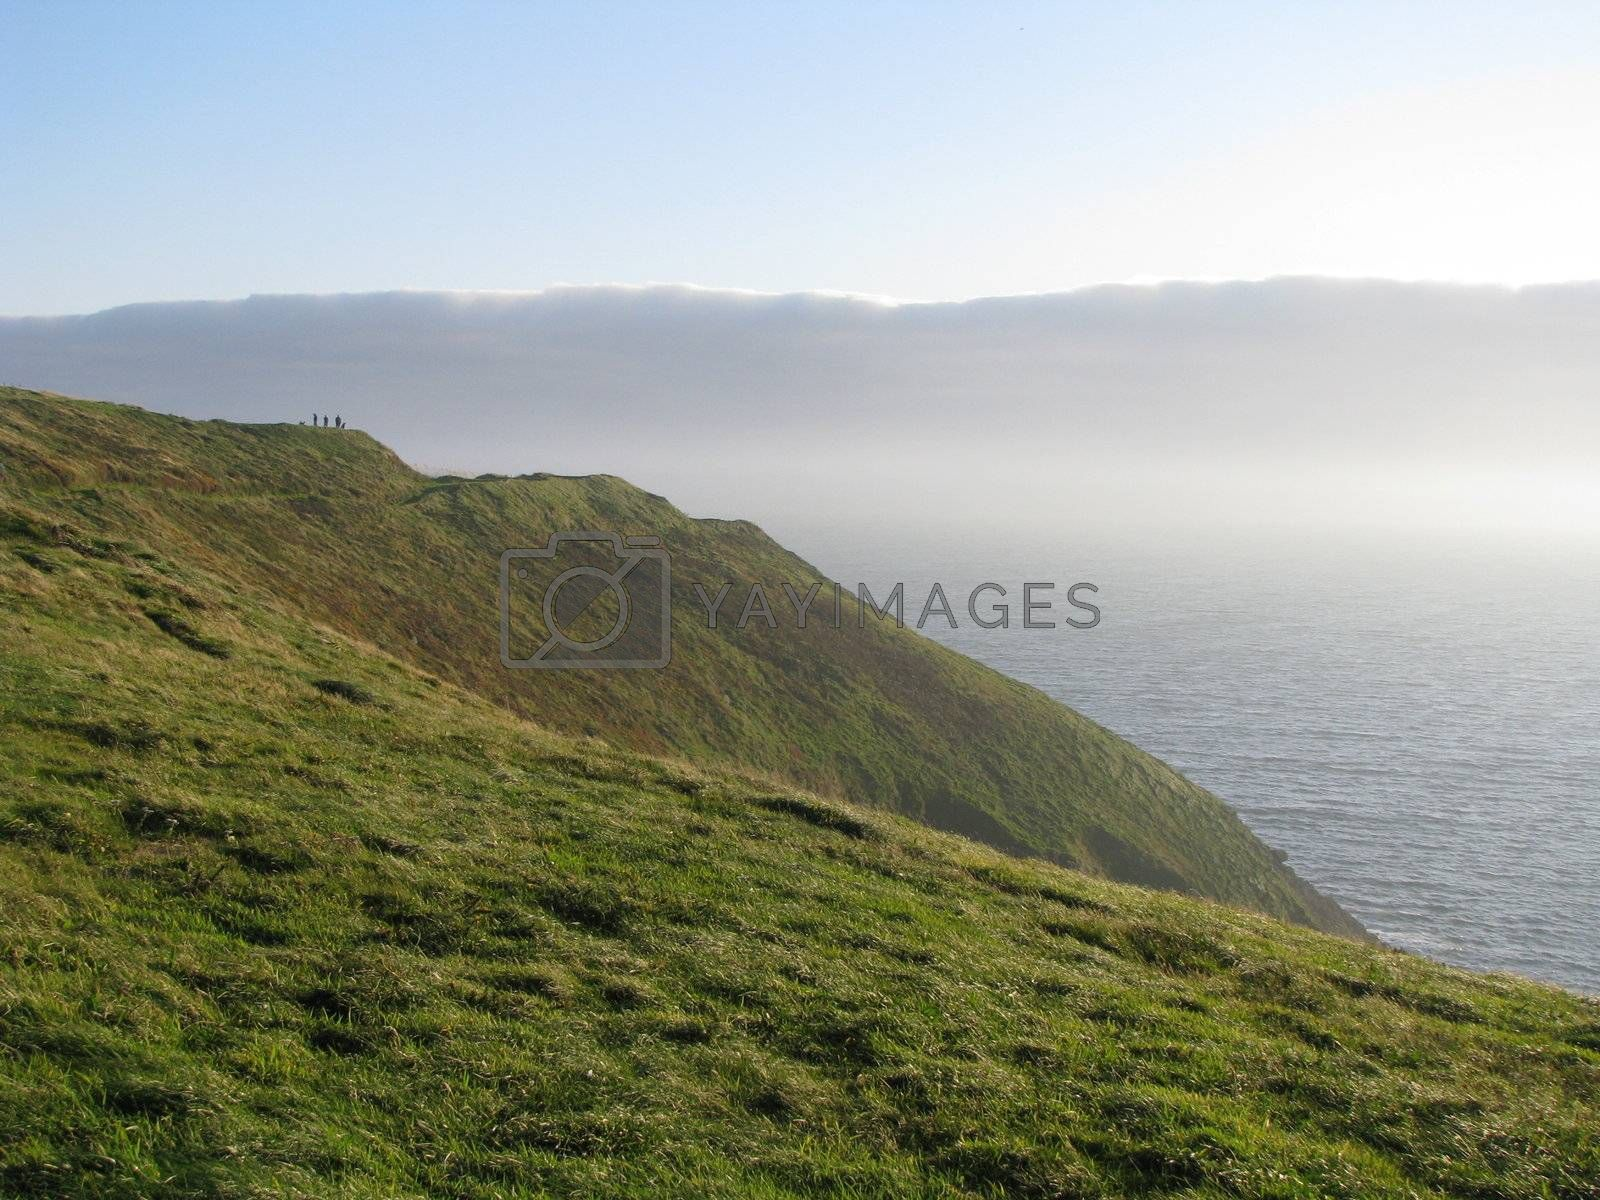 Royalty free image of Cliff on Ocean by ewilliamsdesign